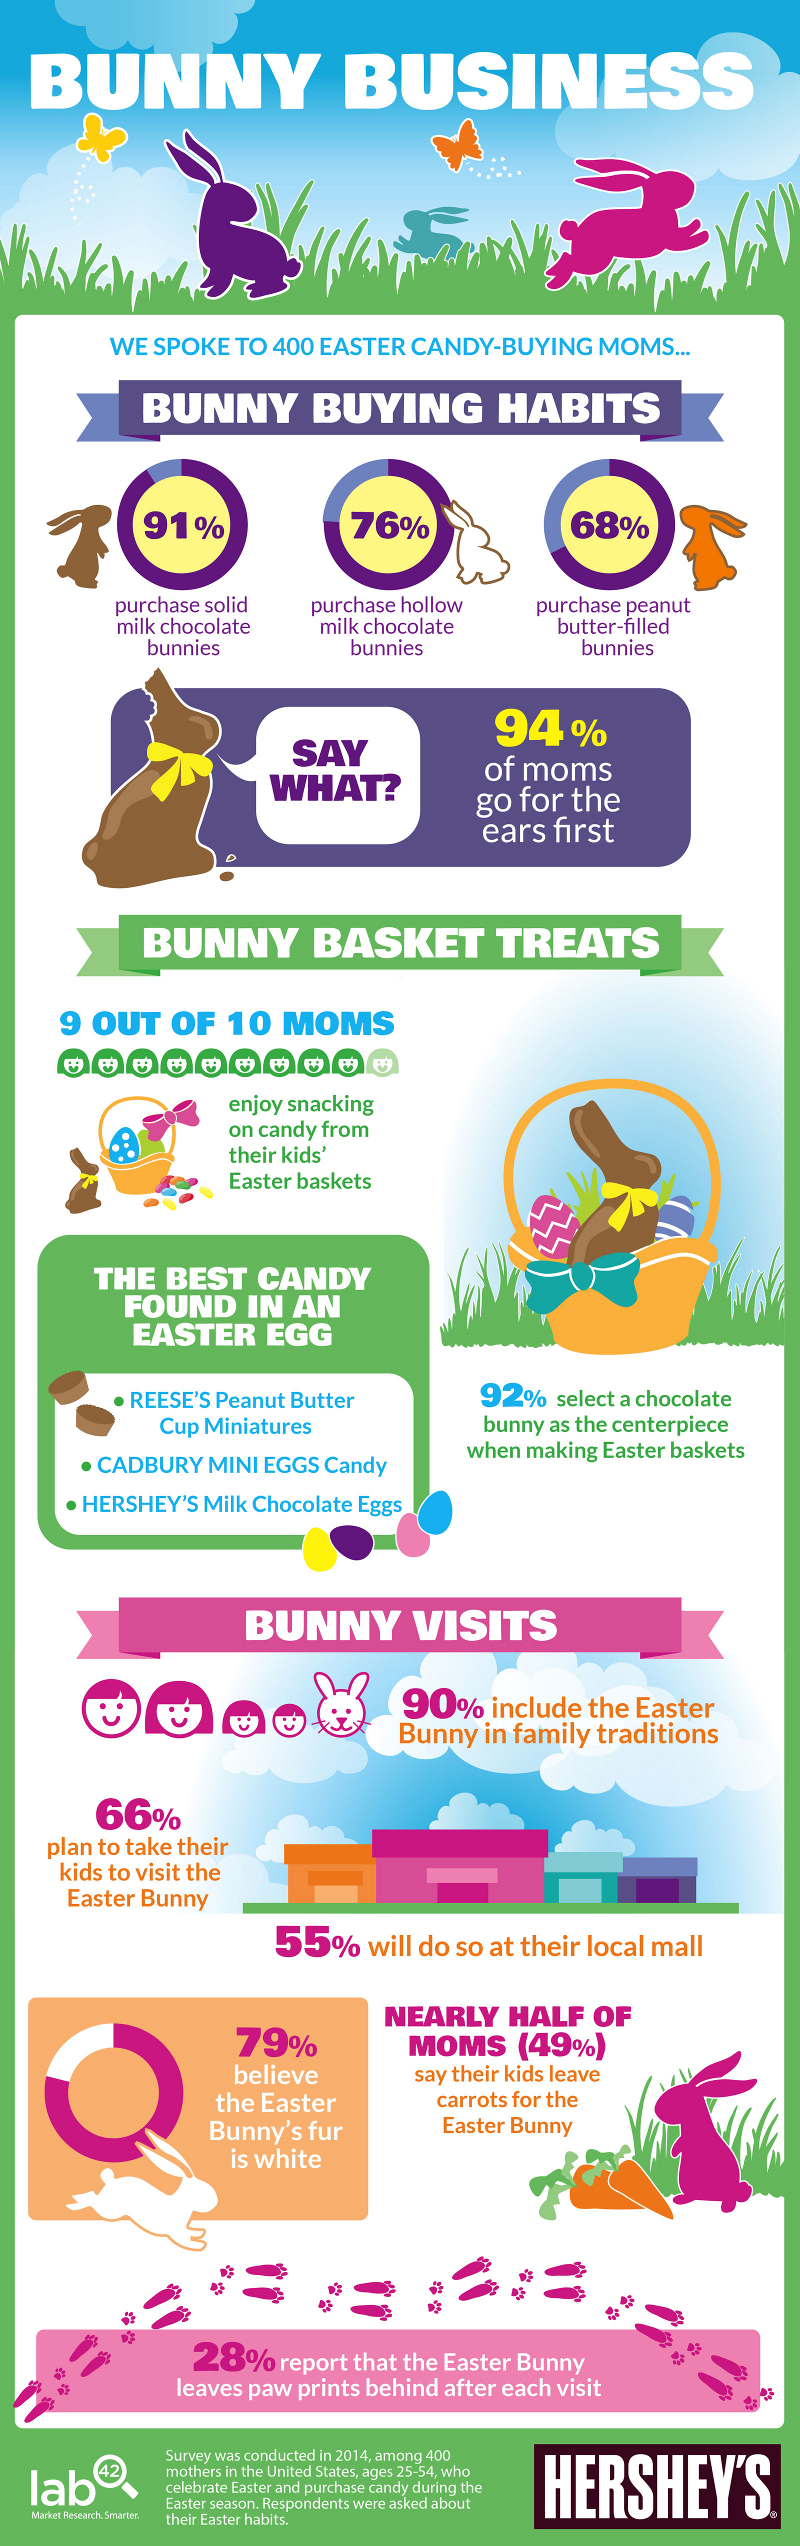 Easter Holiday Statistics